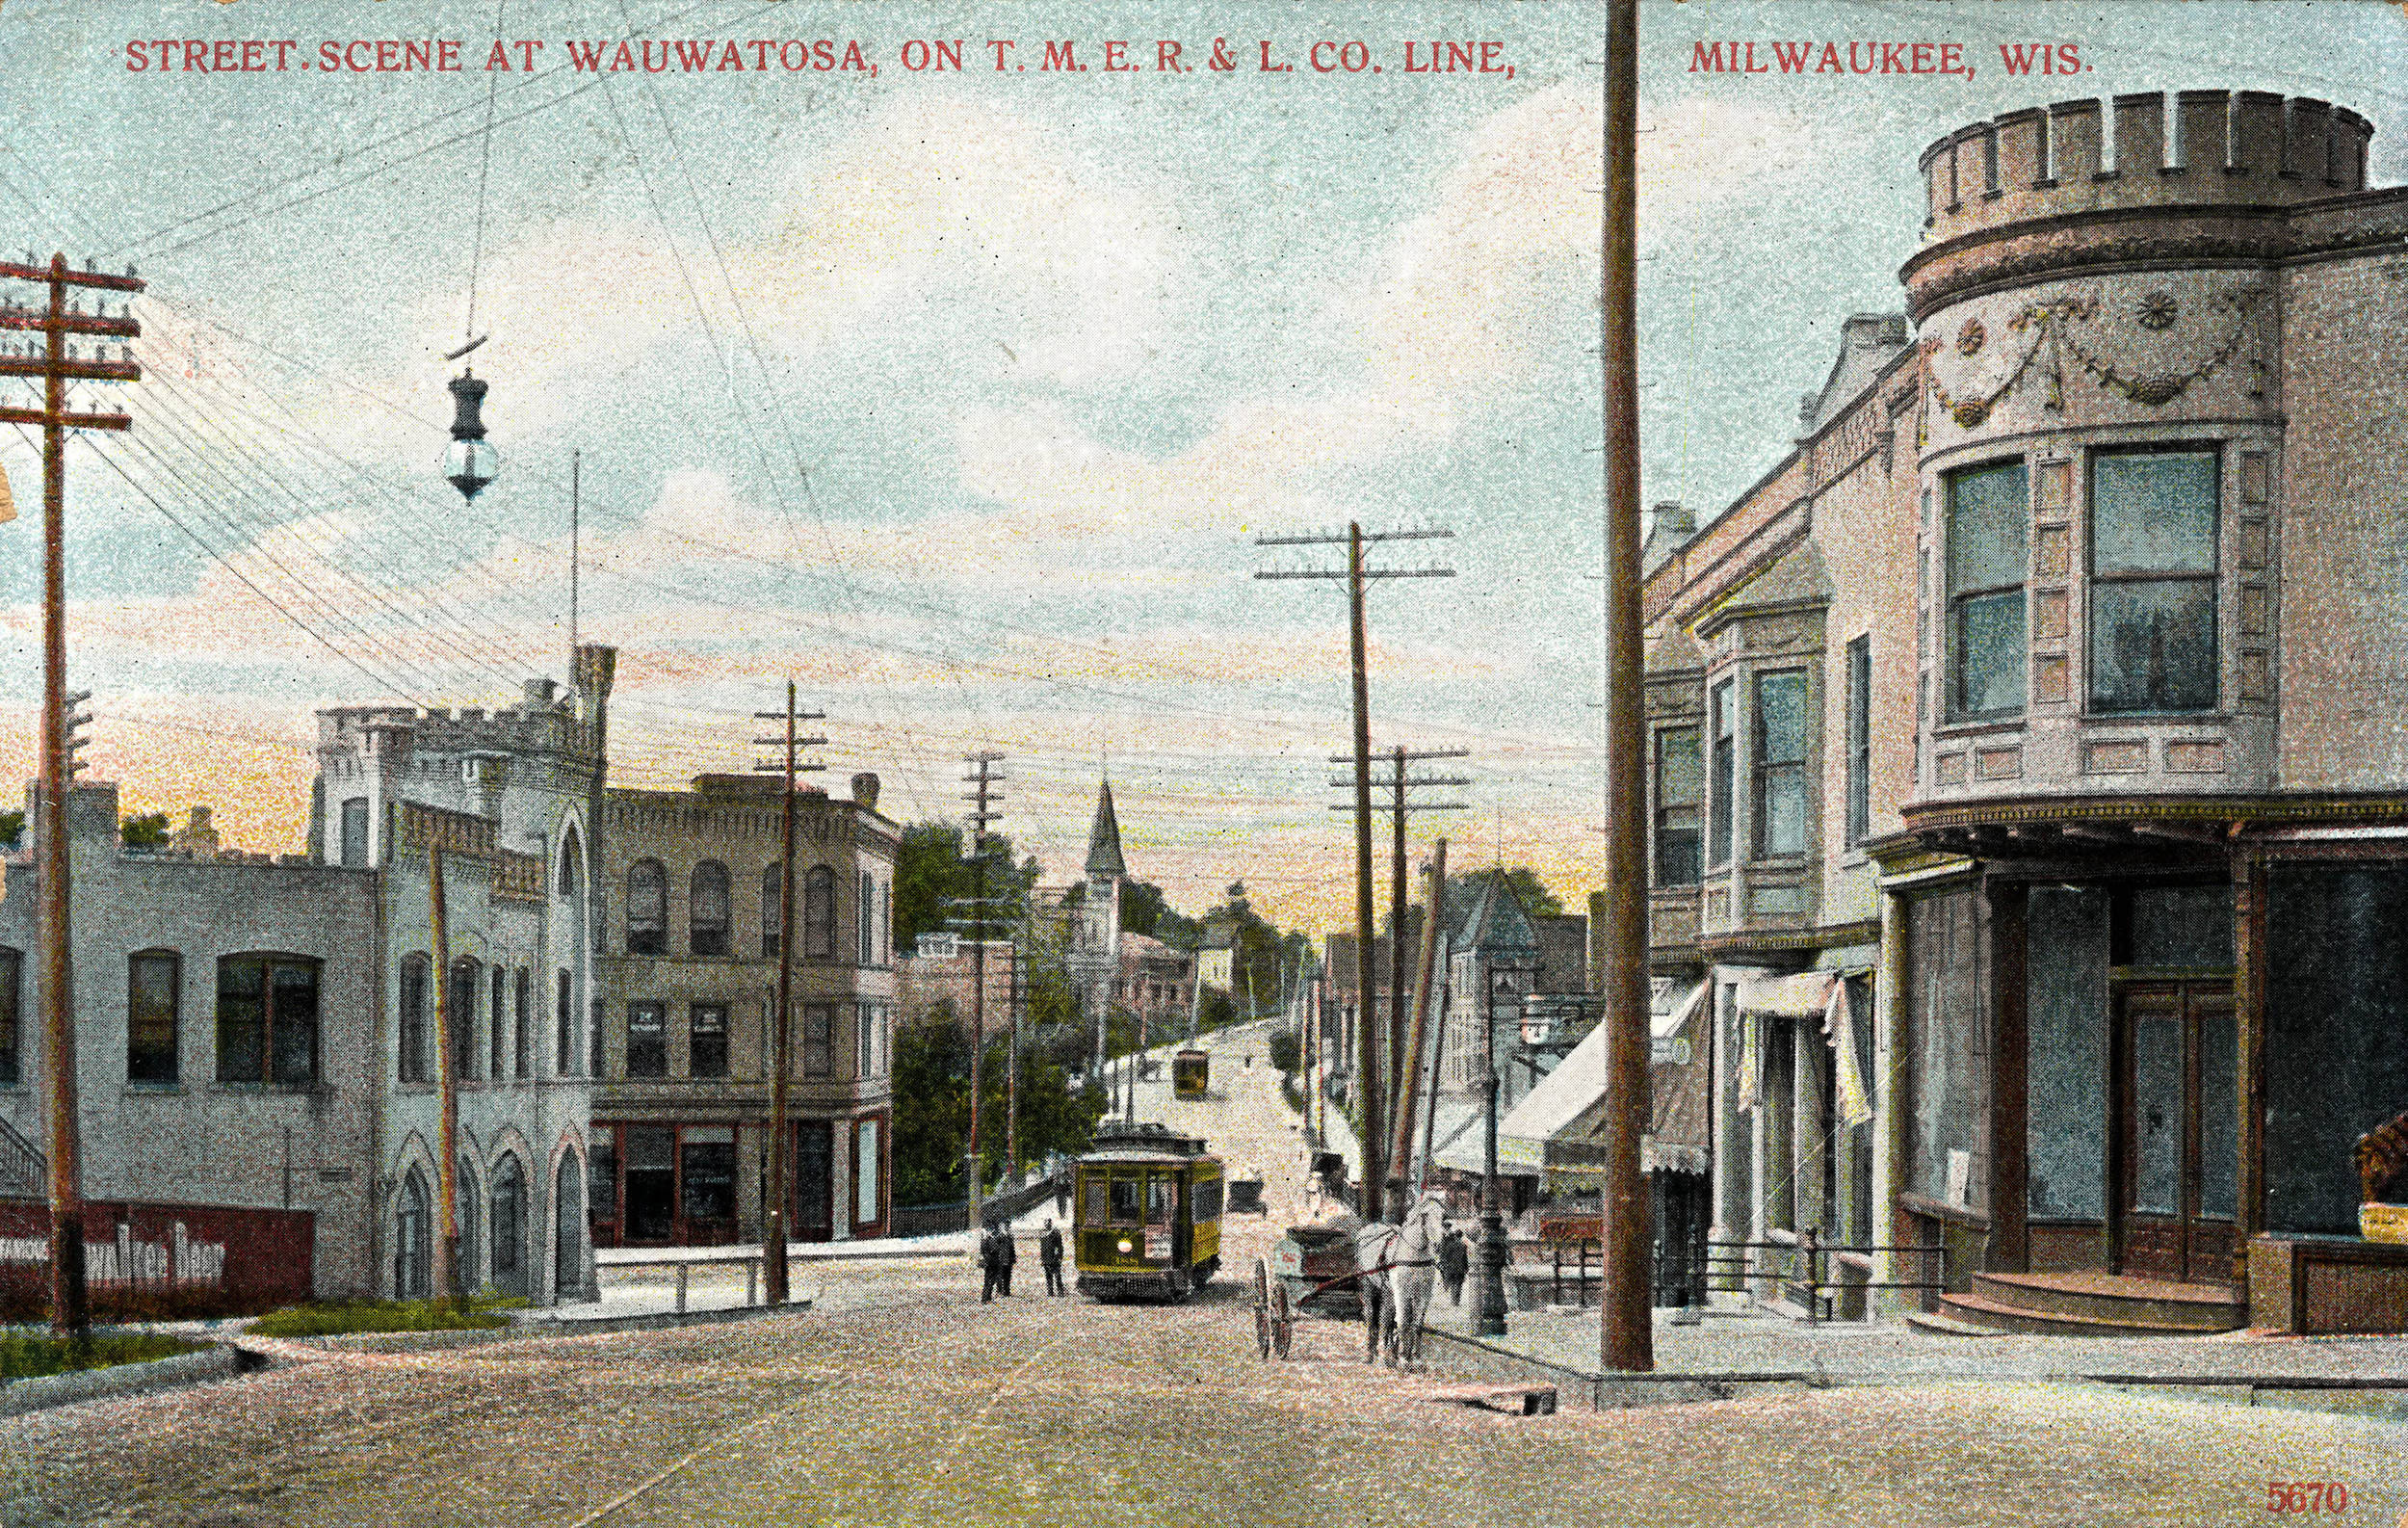 This postcard from the early twentieth century provides a view of a Wauwatosa street scene along the TMER&L Company interurban line.